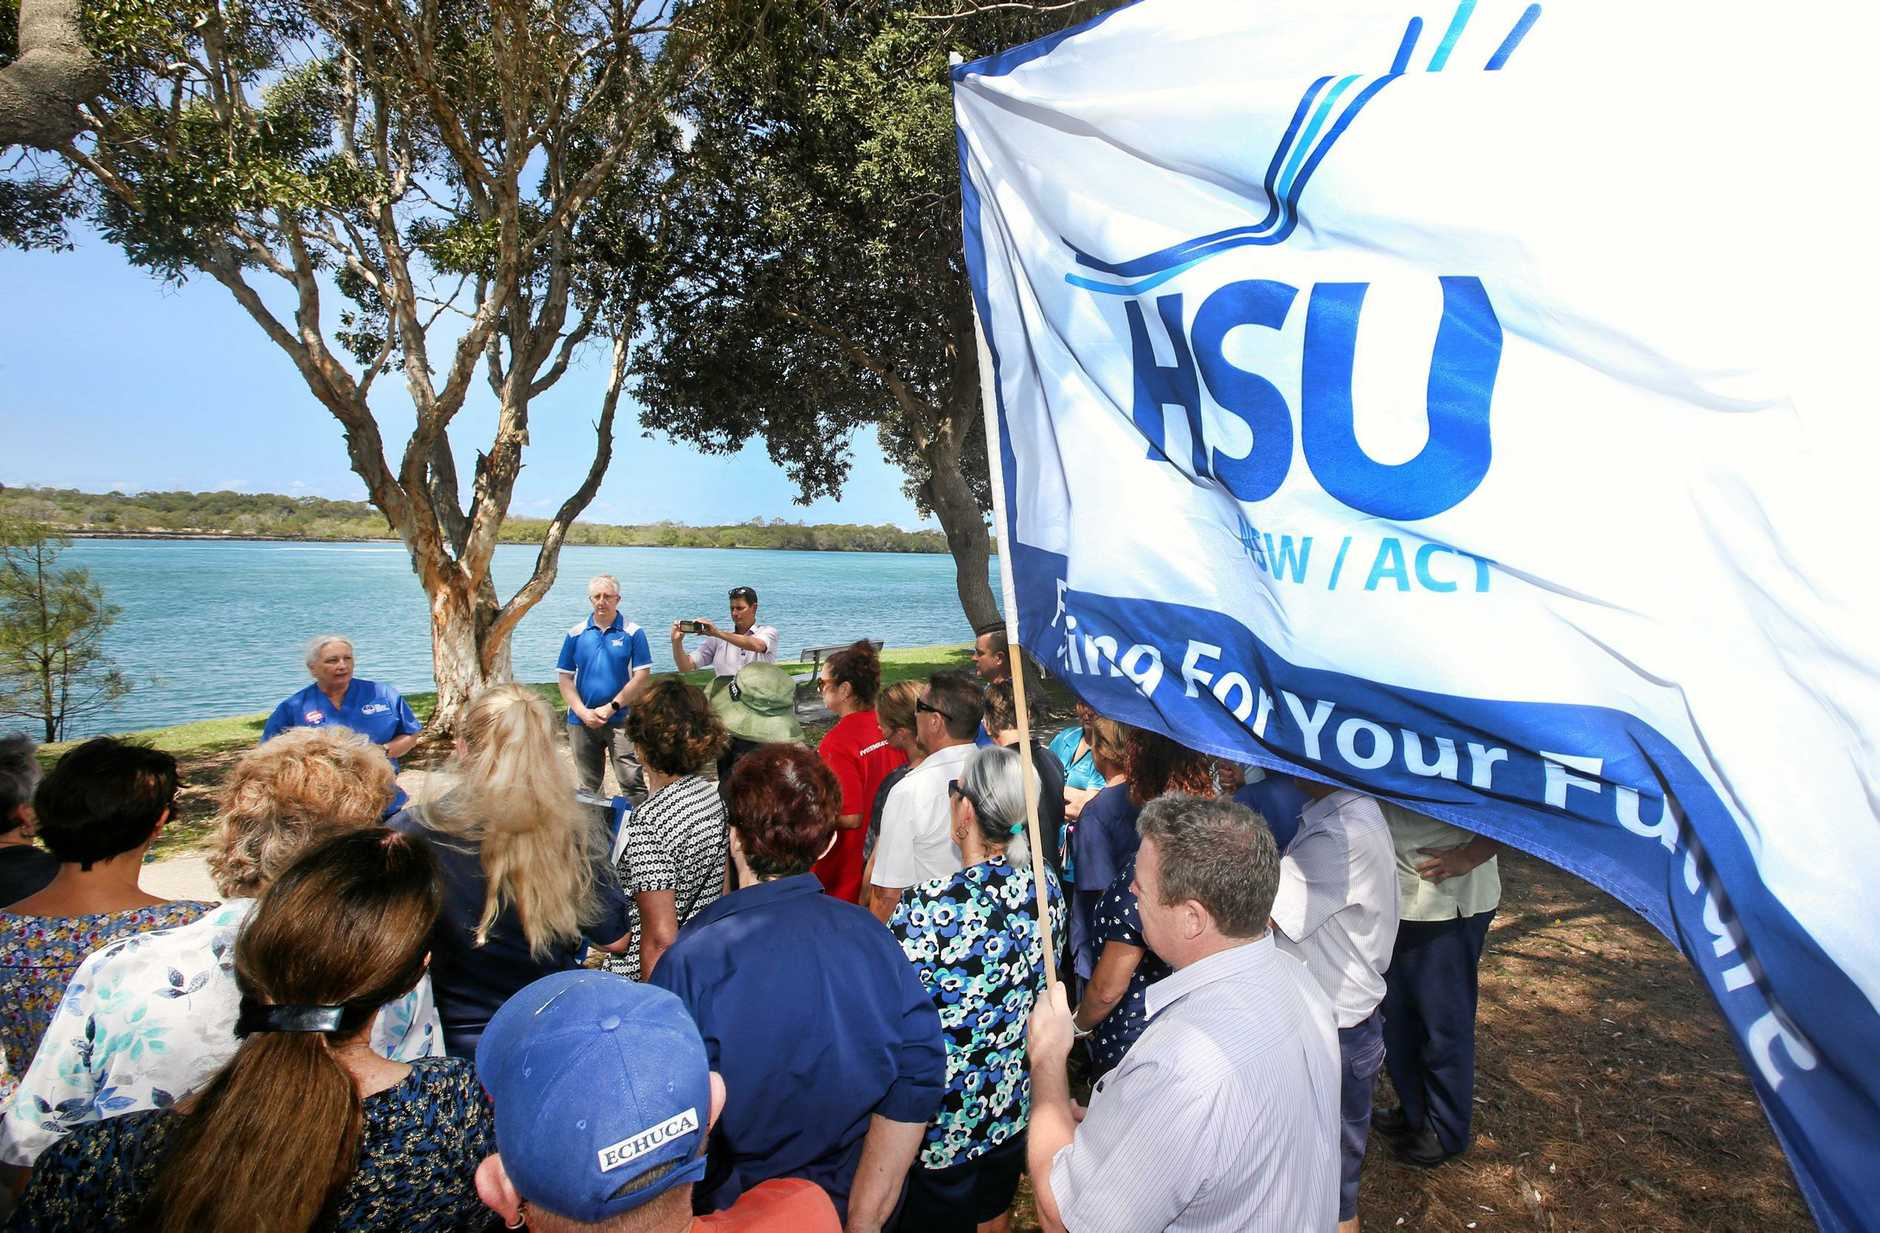 NURSE PROTEST: The Health Services Union and NSW Nurses and Midwives Association held a lunch time meeting outside the Tweed Heads Hospital, and were calling on the NSW Government to release its long-awaited Community Health Review report.